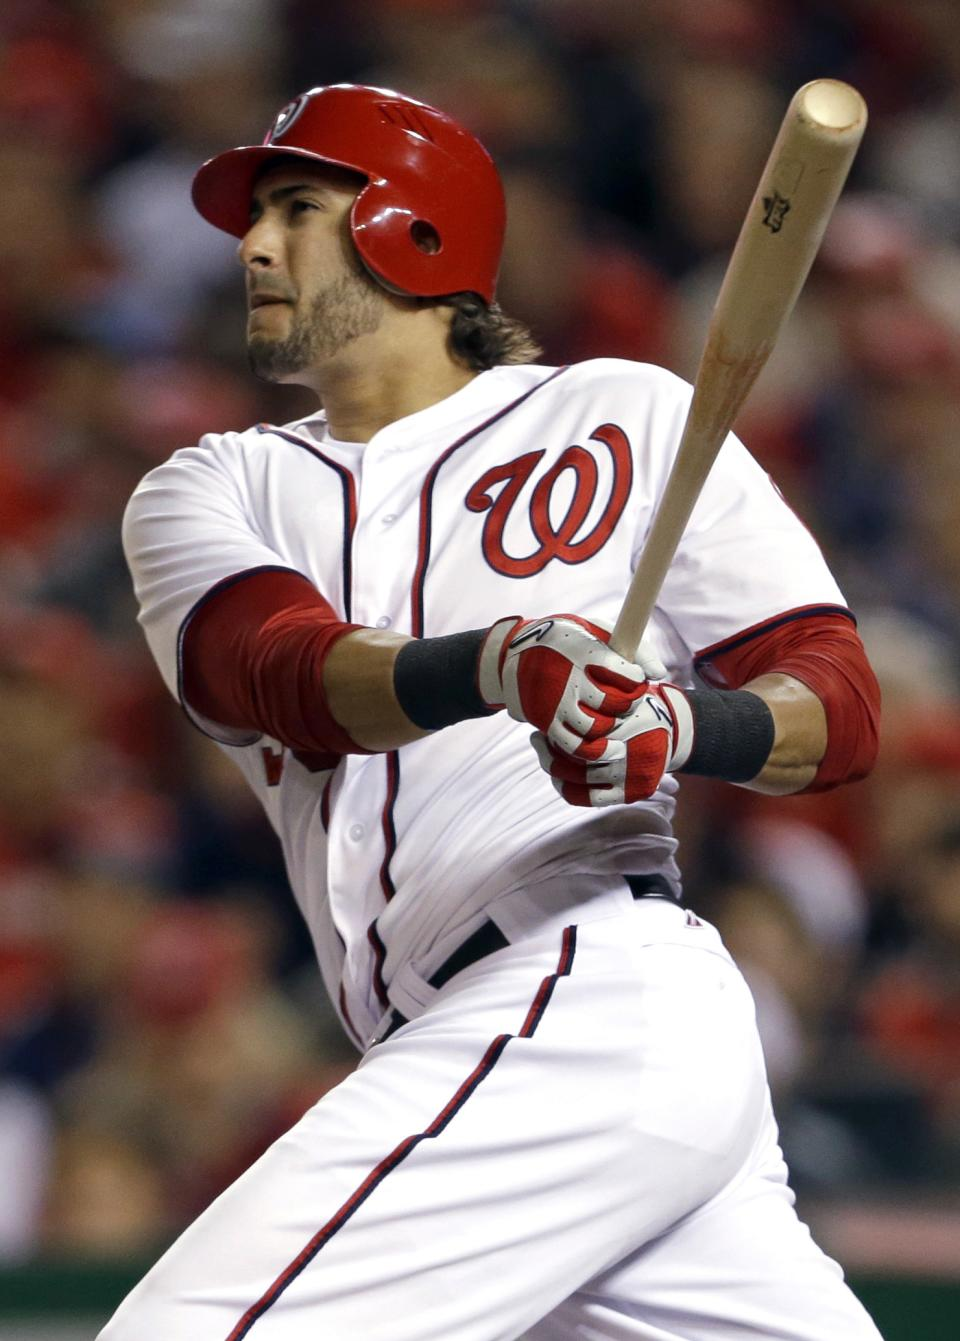 Washington Nationals' Michael Morse watches his two-run home run in the third inning of Game 5 of the National League division baseball series†against the St. Louis Cardinals on Friday, Oct. 12, 2012, in Washington. (AP Photo/Pablo Martinez Monsivais)